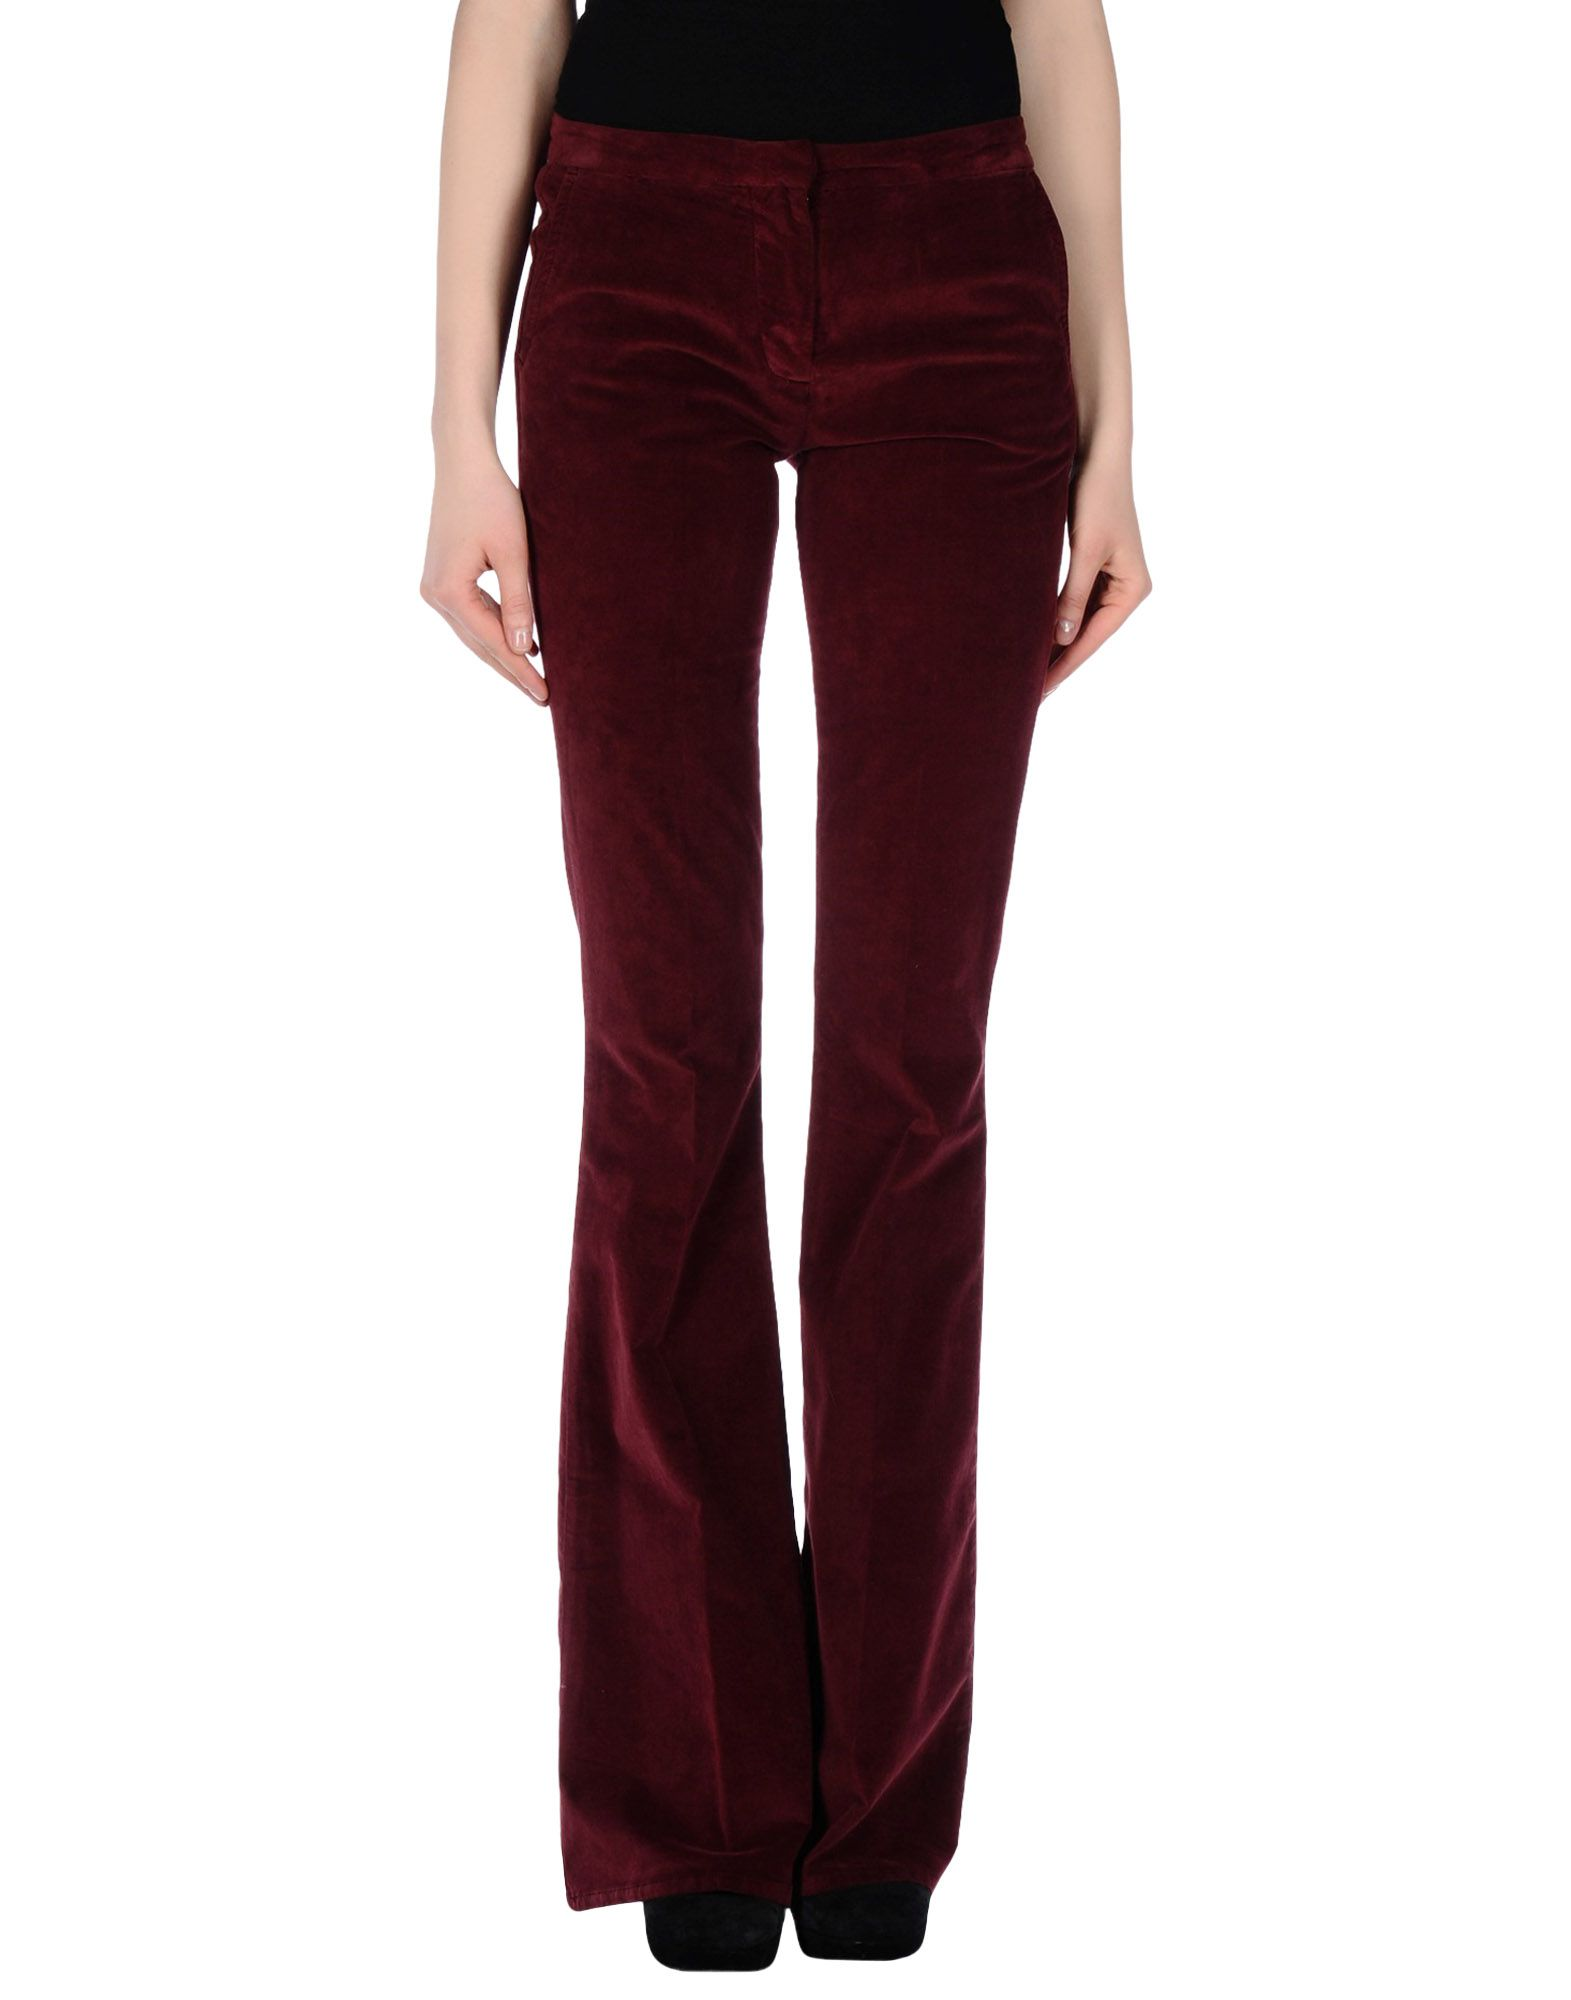 CYCLE flare trousers